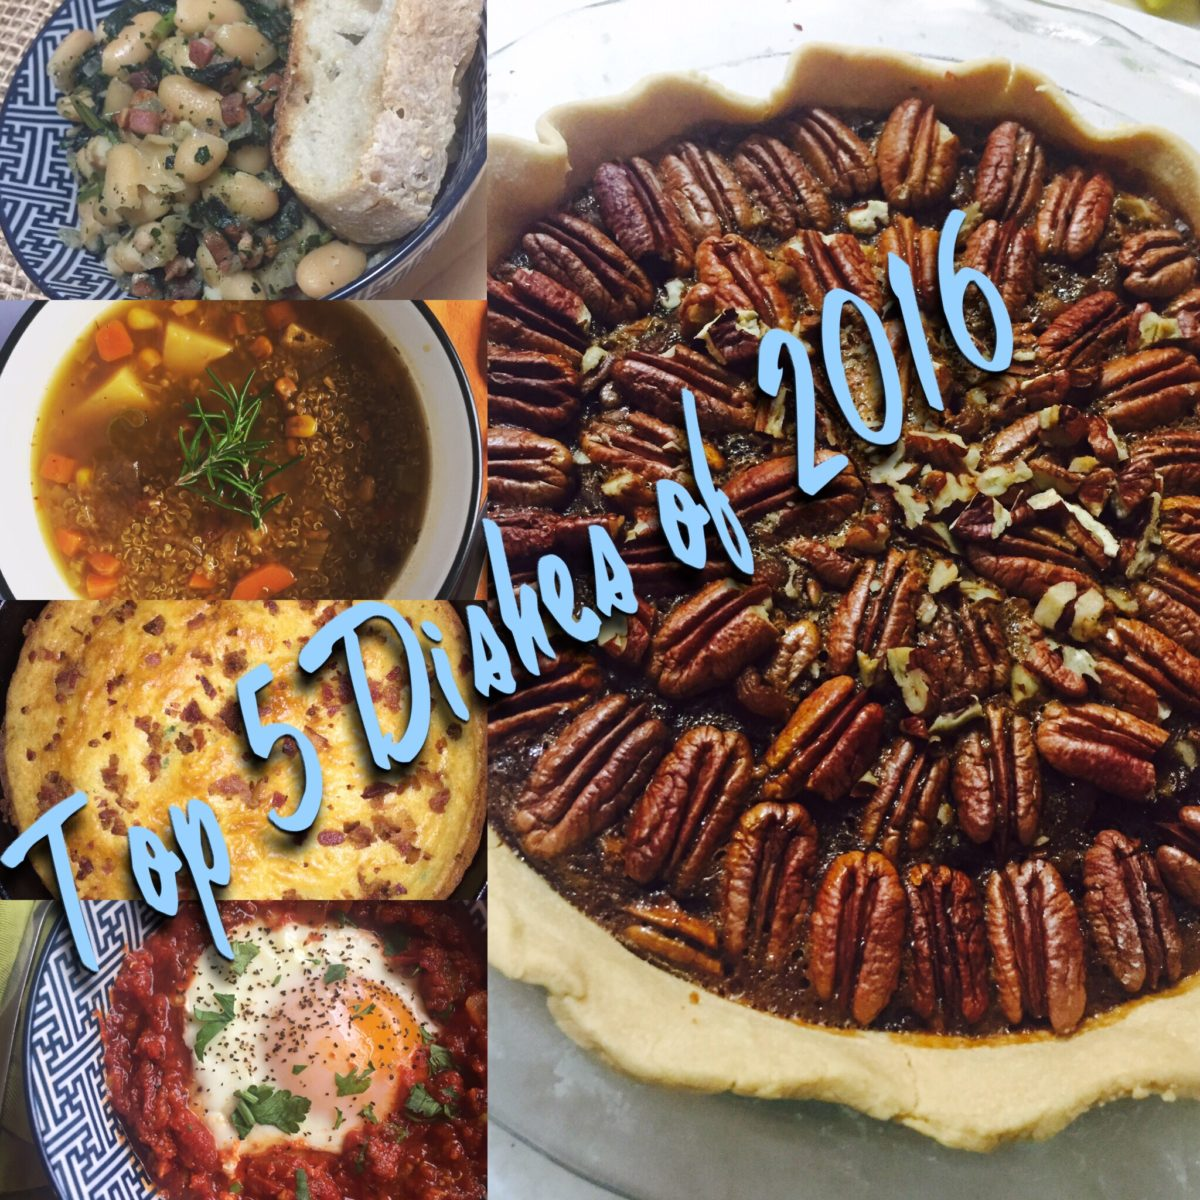 Top Five Dishes 2016